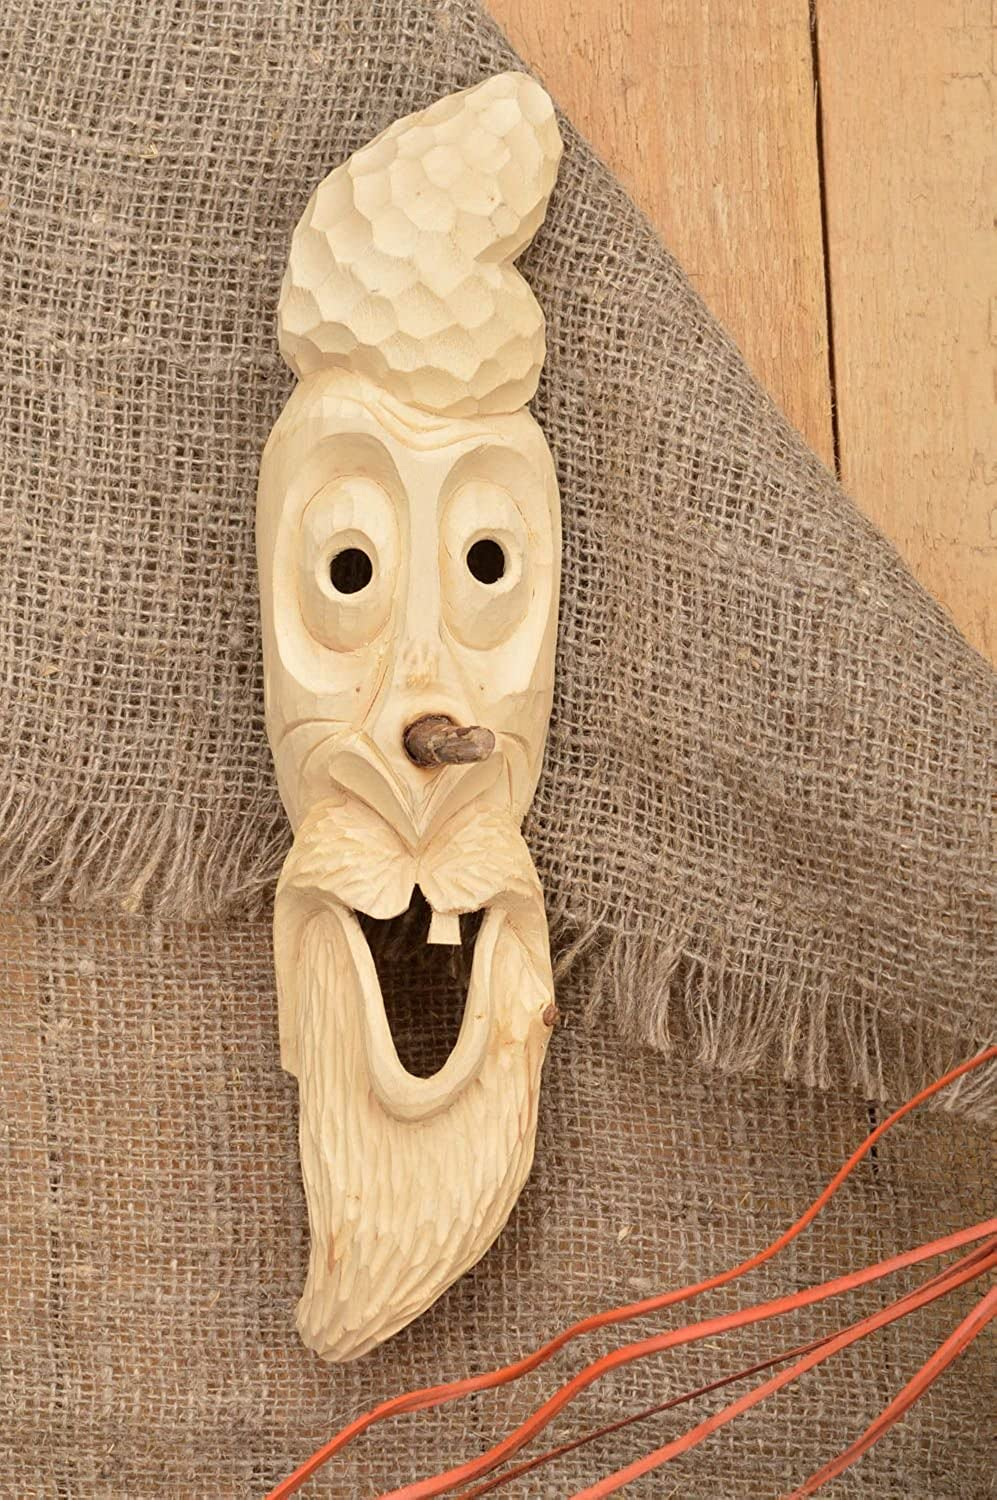 Handmade Decoration Souvenir mask Wooden Gifts for Decorative use only